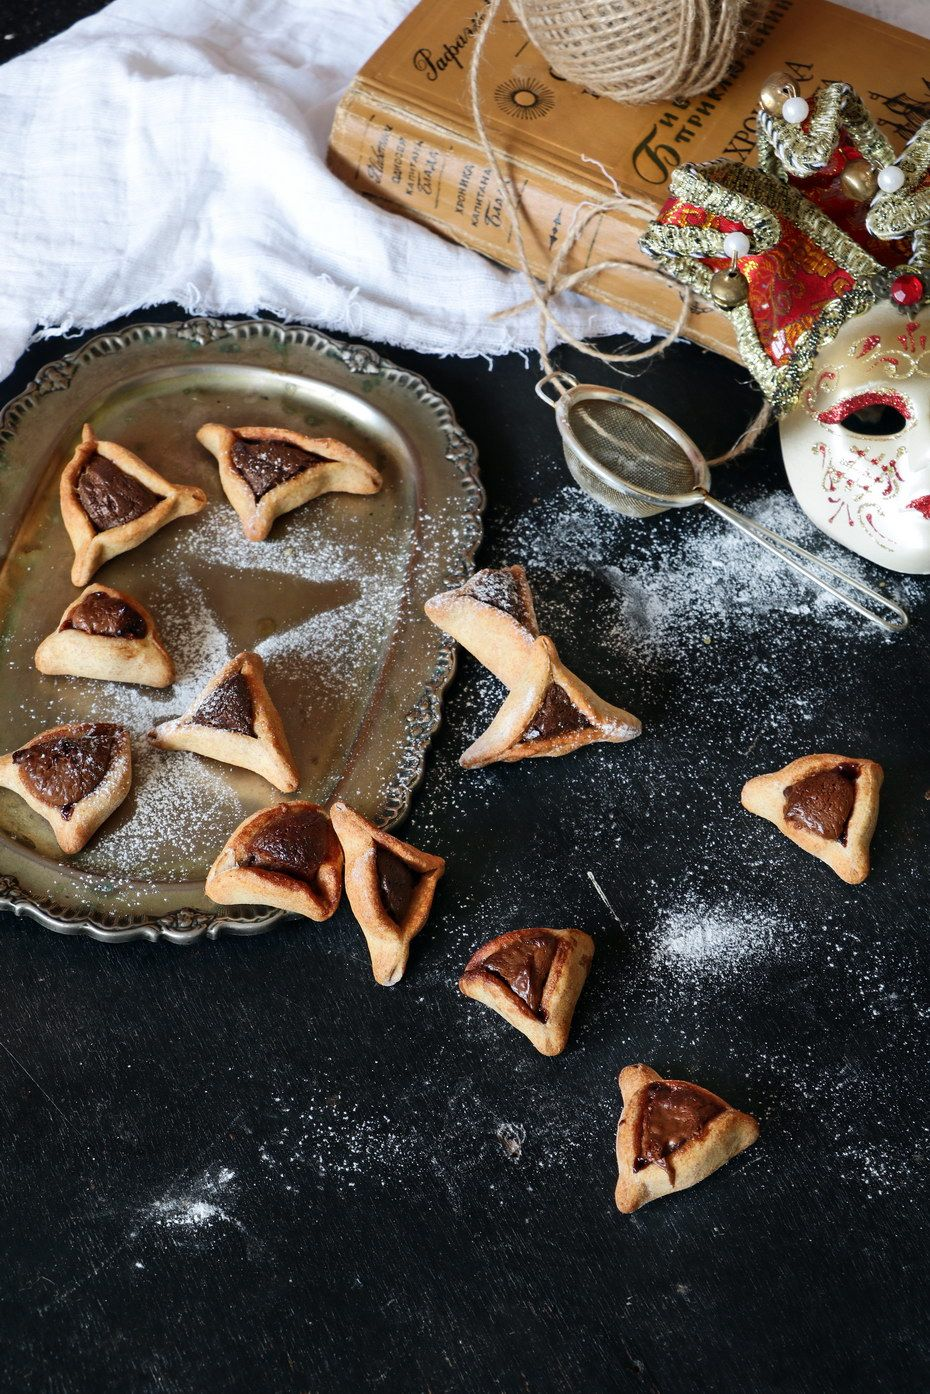 Dairy Free Hazelnut Hamantaschen, this is one of my favorite Purim recipe. Click the photo for the full recipe!